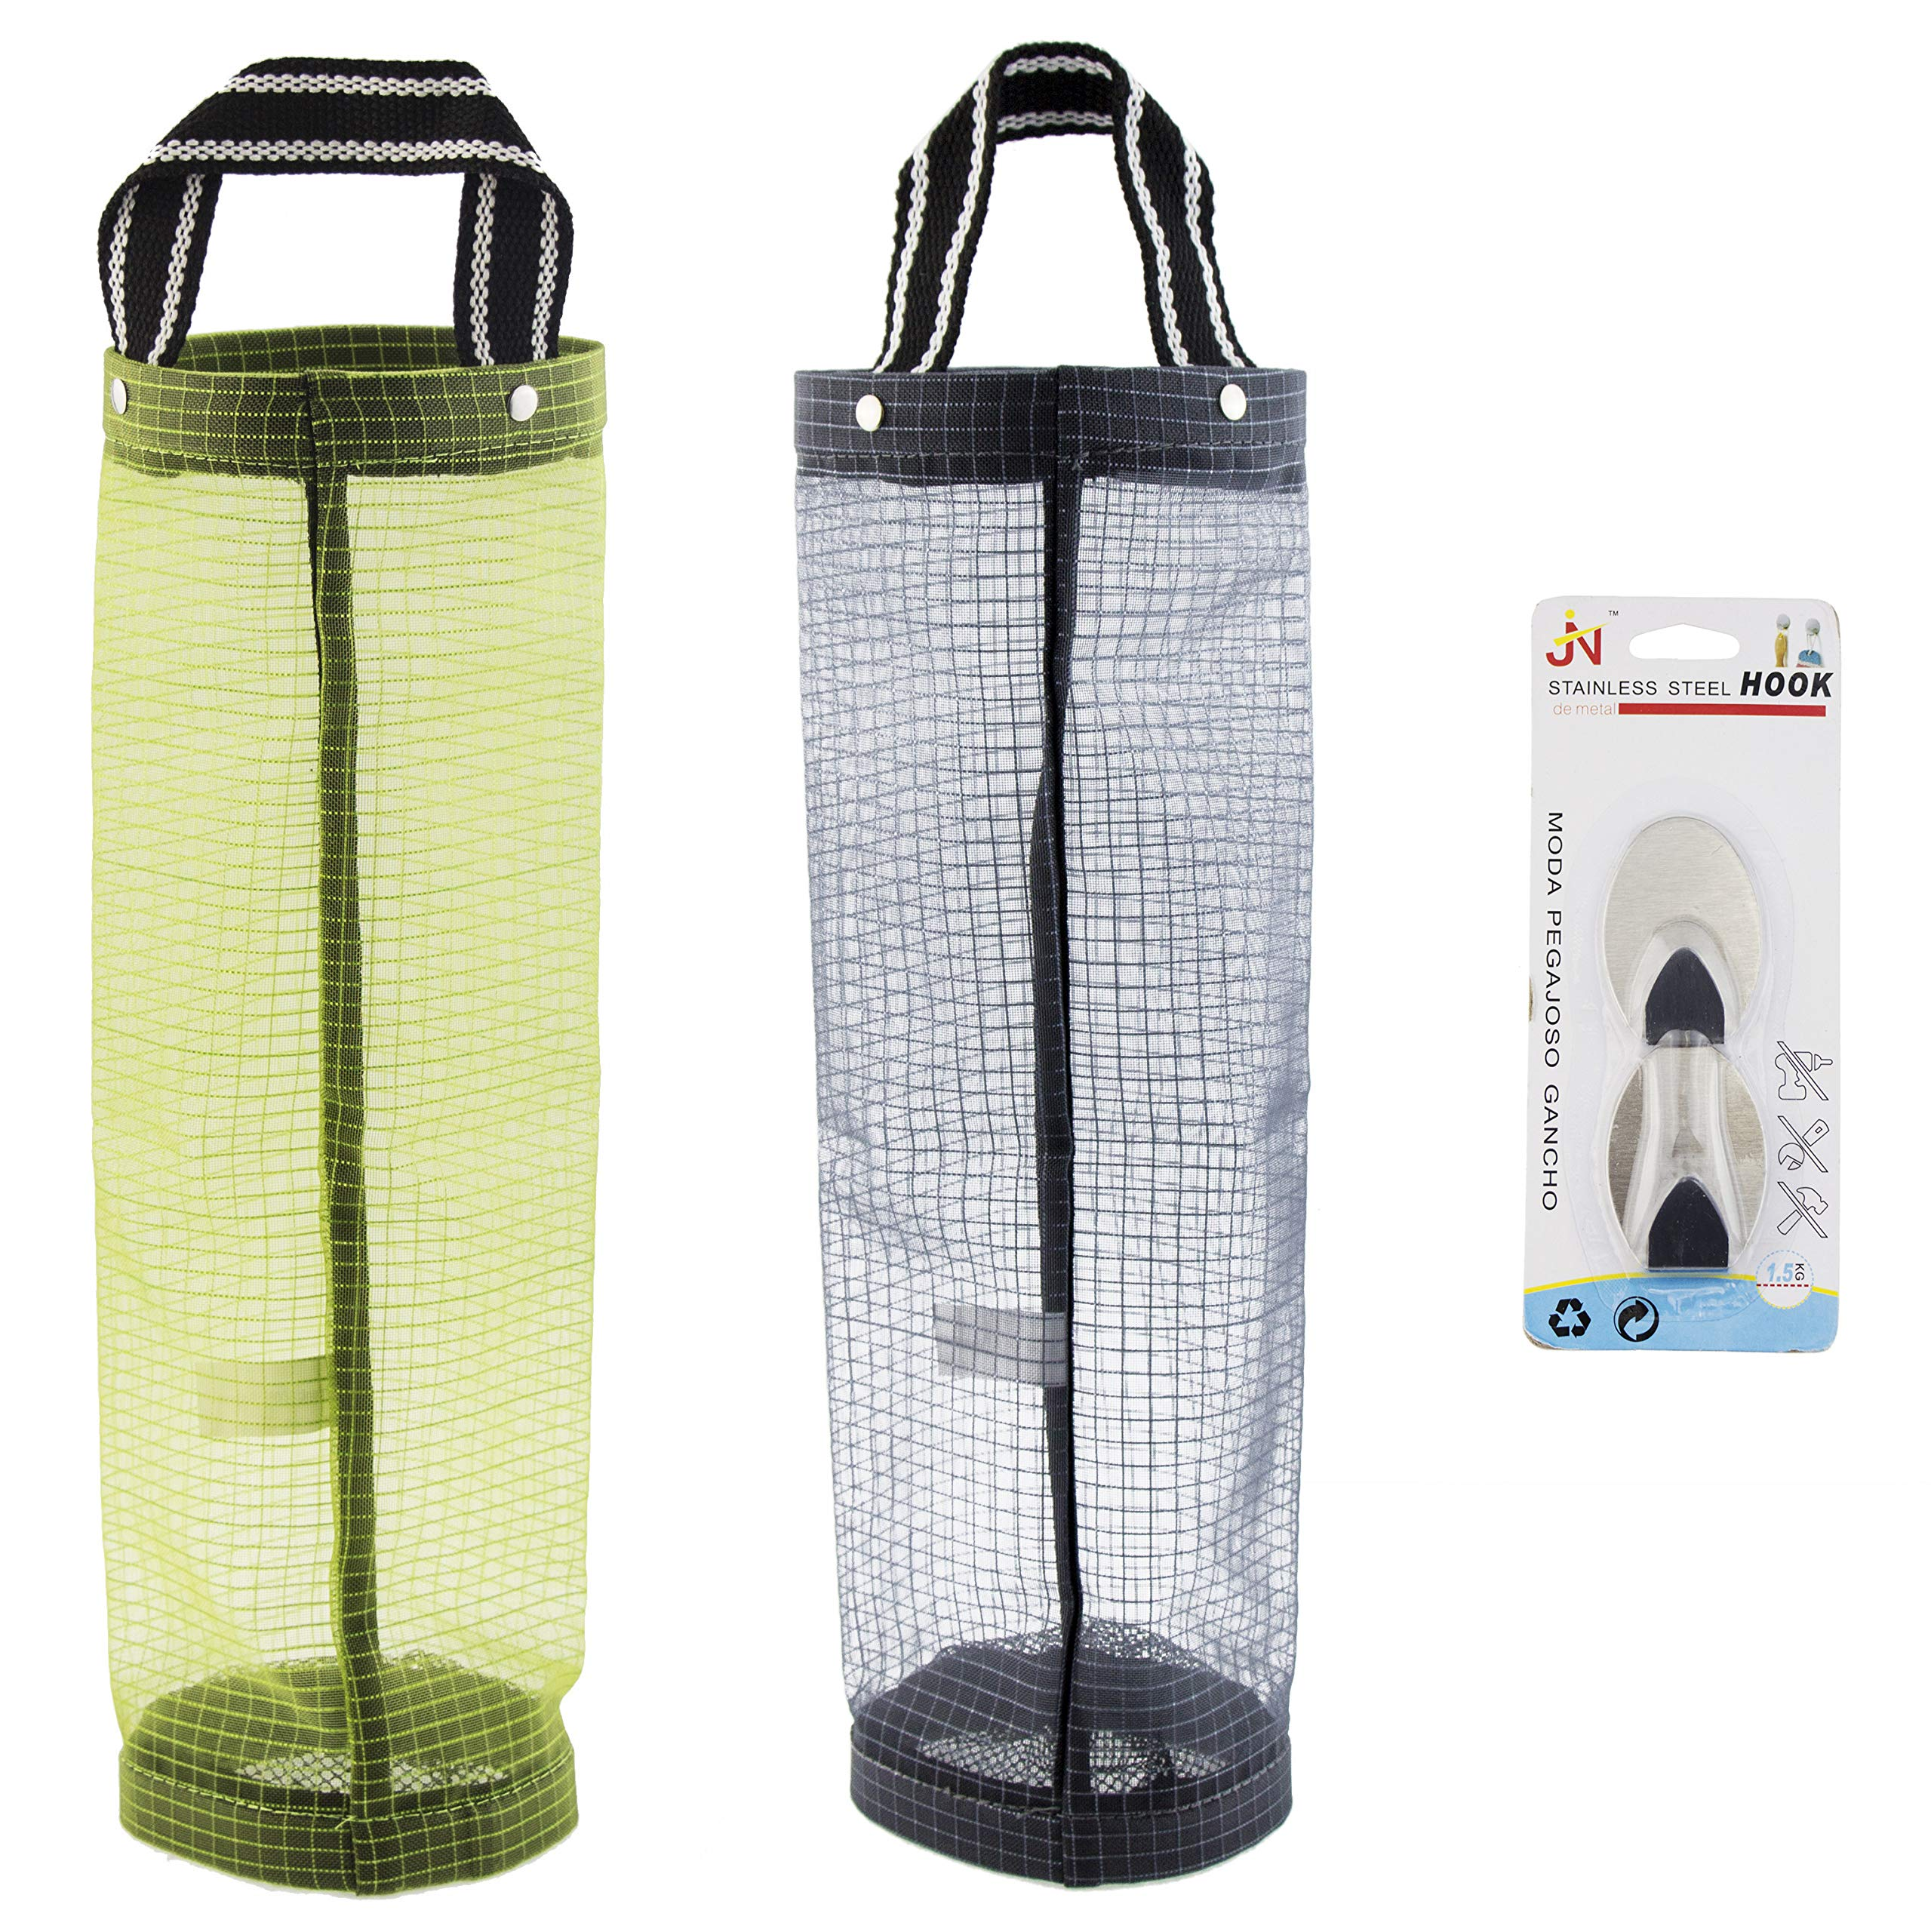 Plastic Bag Holder Dispensers 2pcs Folding Mesh Garbage Bags Hanging Storage Bag Trash bags Holder Organizer Recycling Grocery Pocket Containers with 2 Hooks for Home and Kitchen Grey & Green